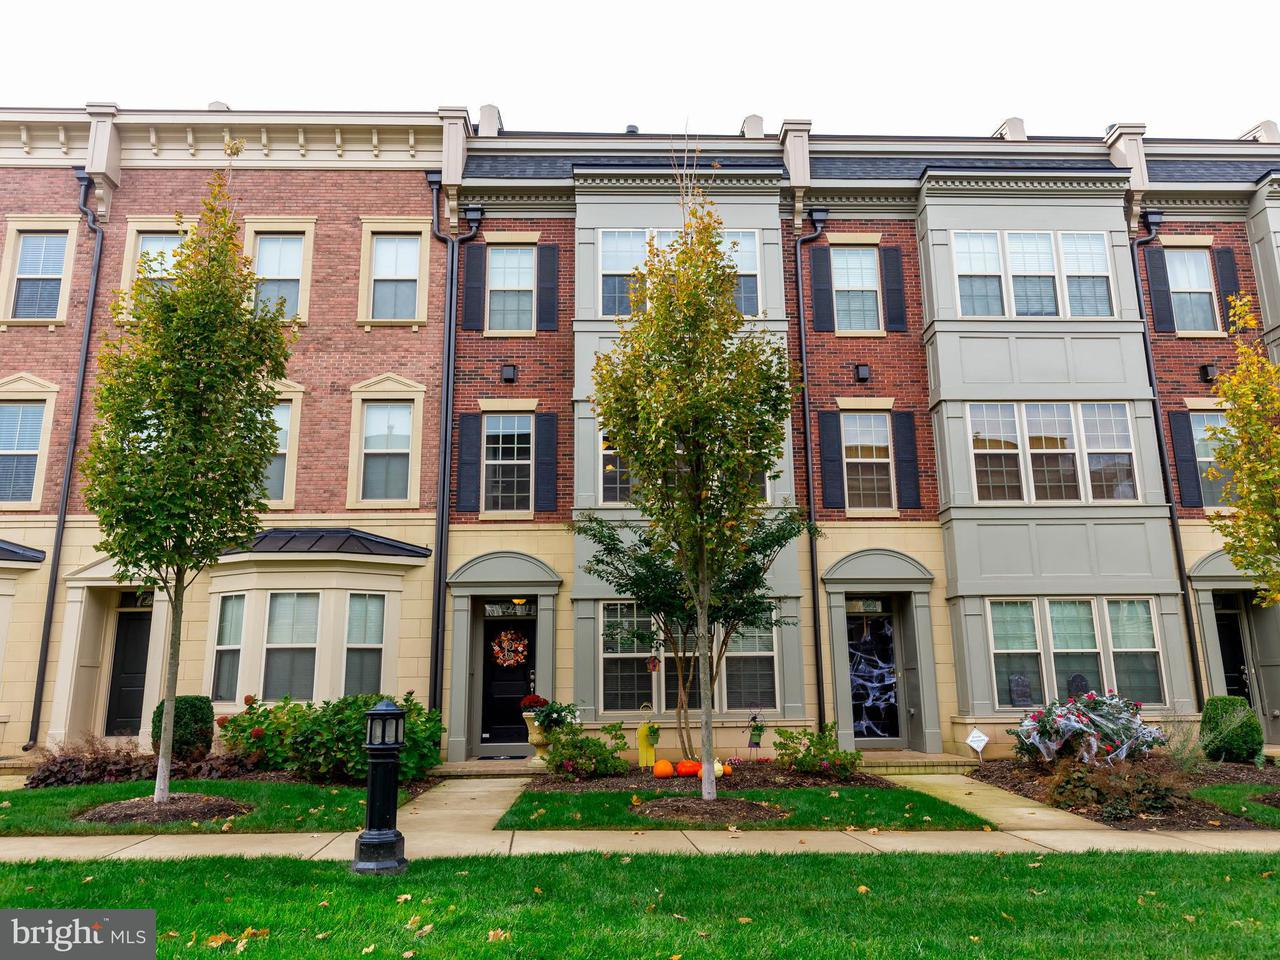 Townhouse for Sale at 724 SENTRY SQ 724 SENTRY SQ Oxon Hill, Maryland 20745 United States